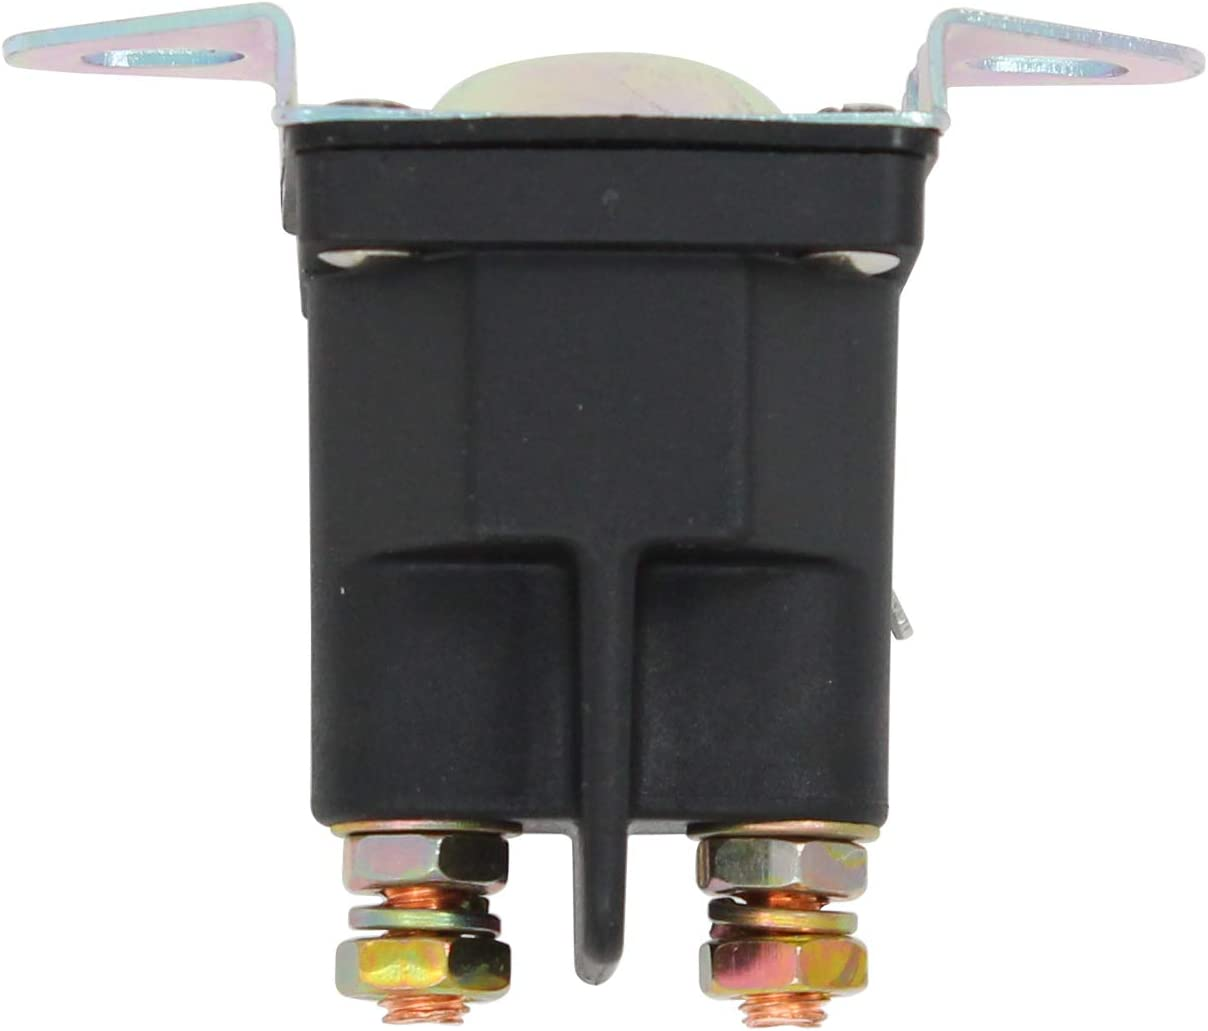 Compatible with 117-1197 AM130365 Solenoid 532146154 Starter Solenoid Replacement for AYP 3367R